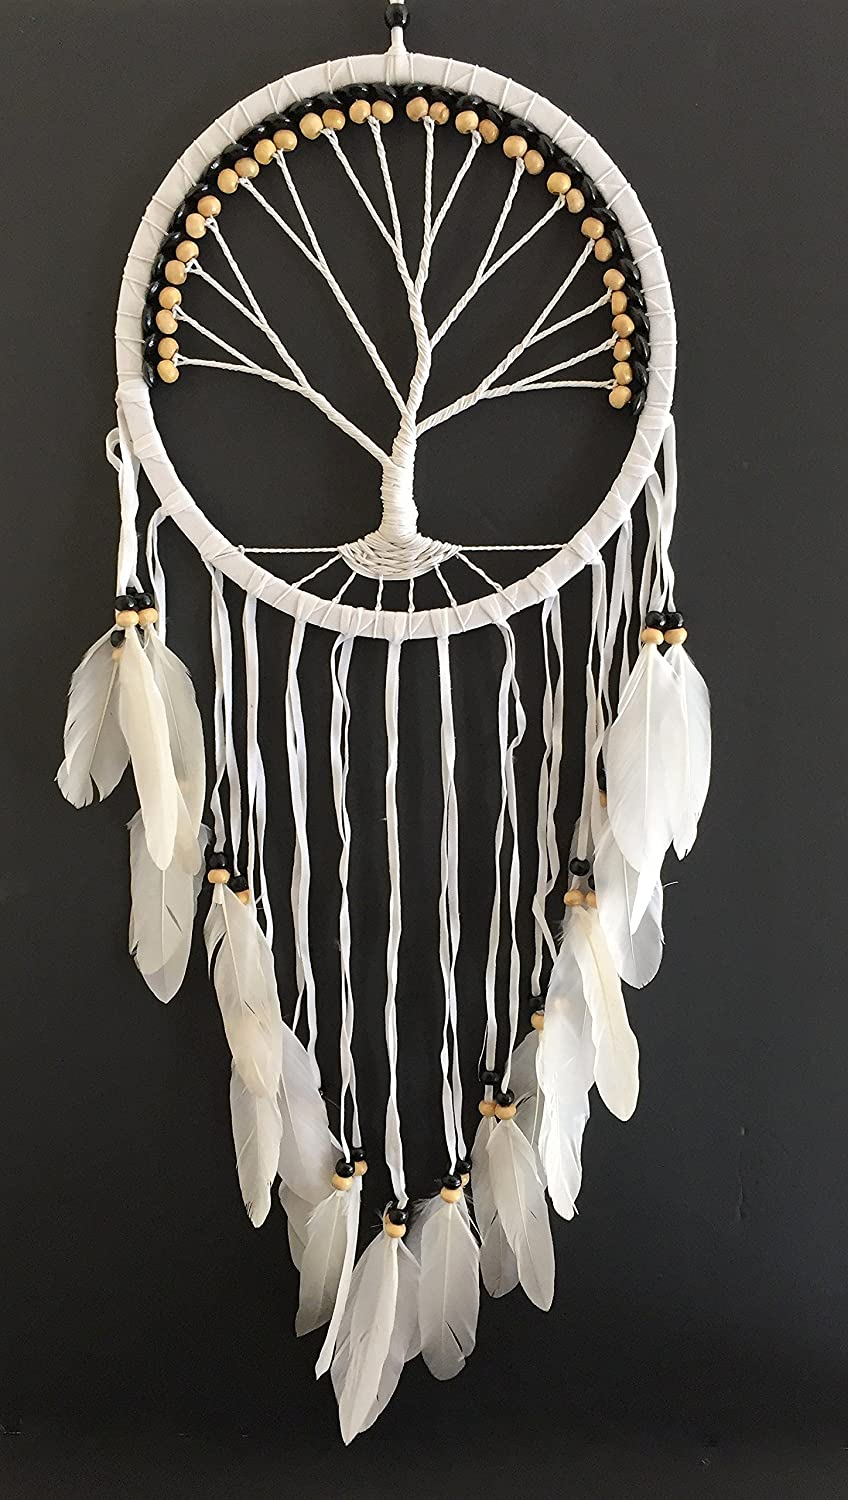 OMA Dream Catcher - Tree of Life White Suede Dreamcatcher Hand Crafted with Real Feathers & Wood Beads - Large Size - 36